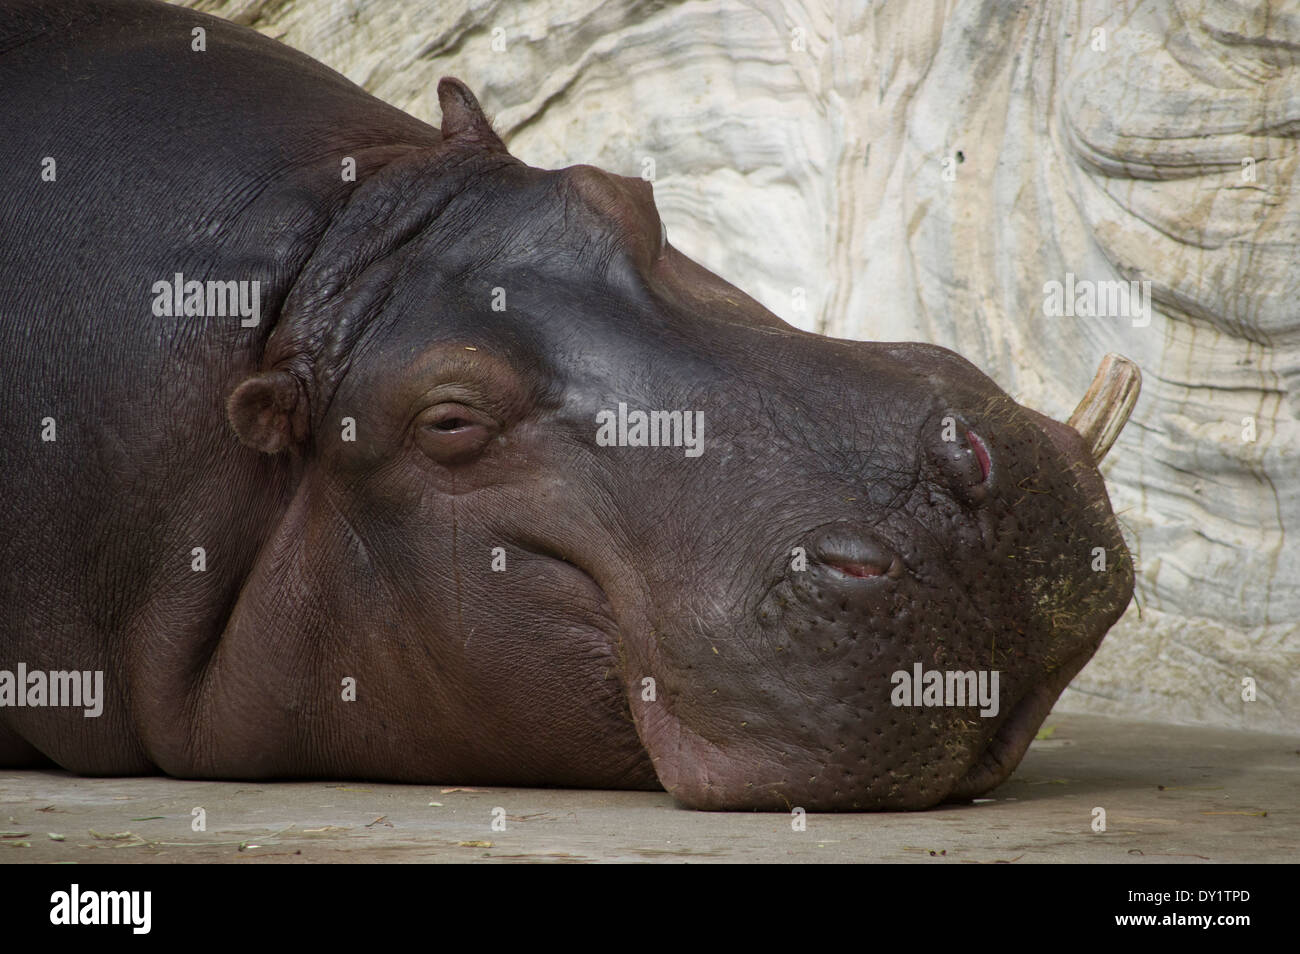 Hippo crying with tears at Ueno Zoo, Tokyo, Japan - Stock Image